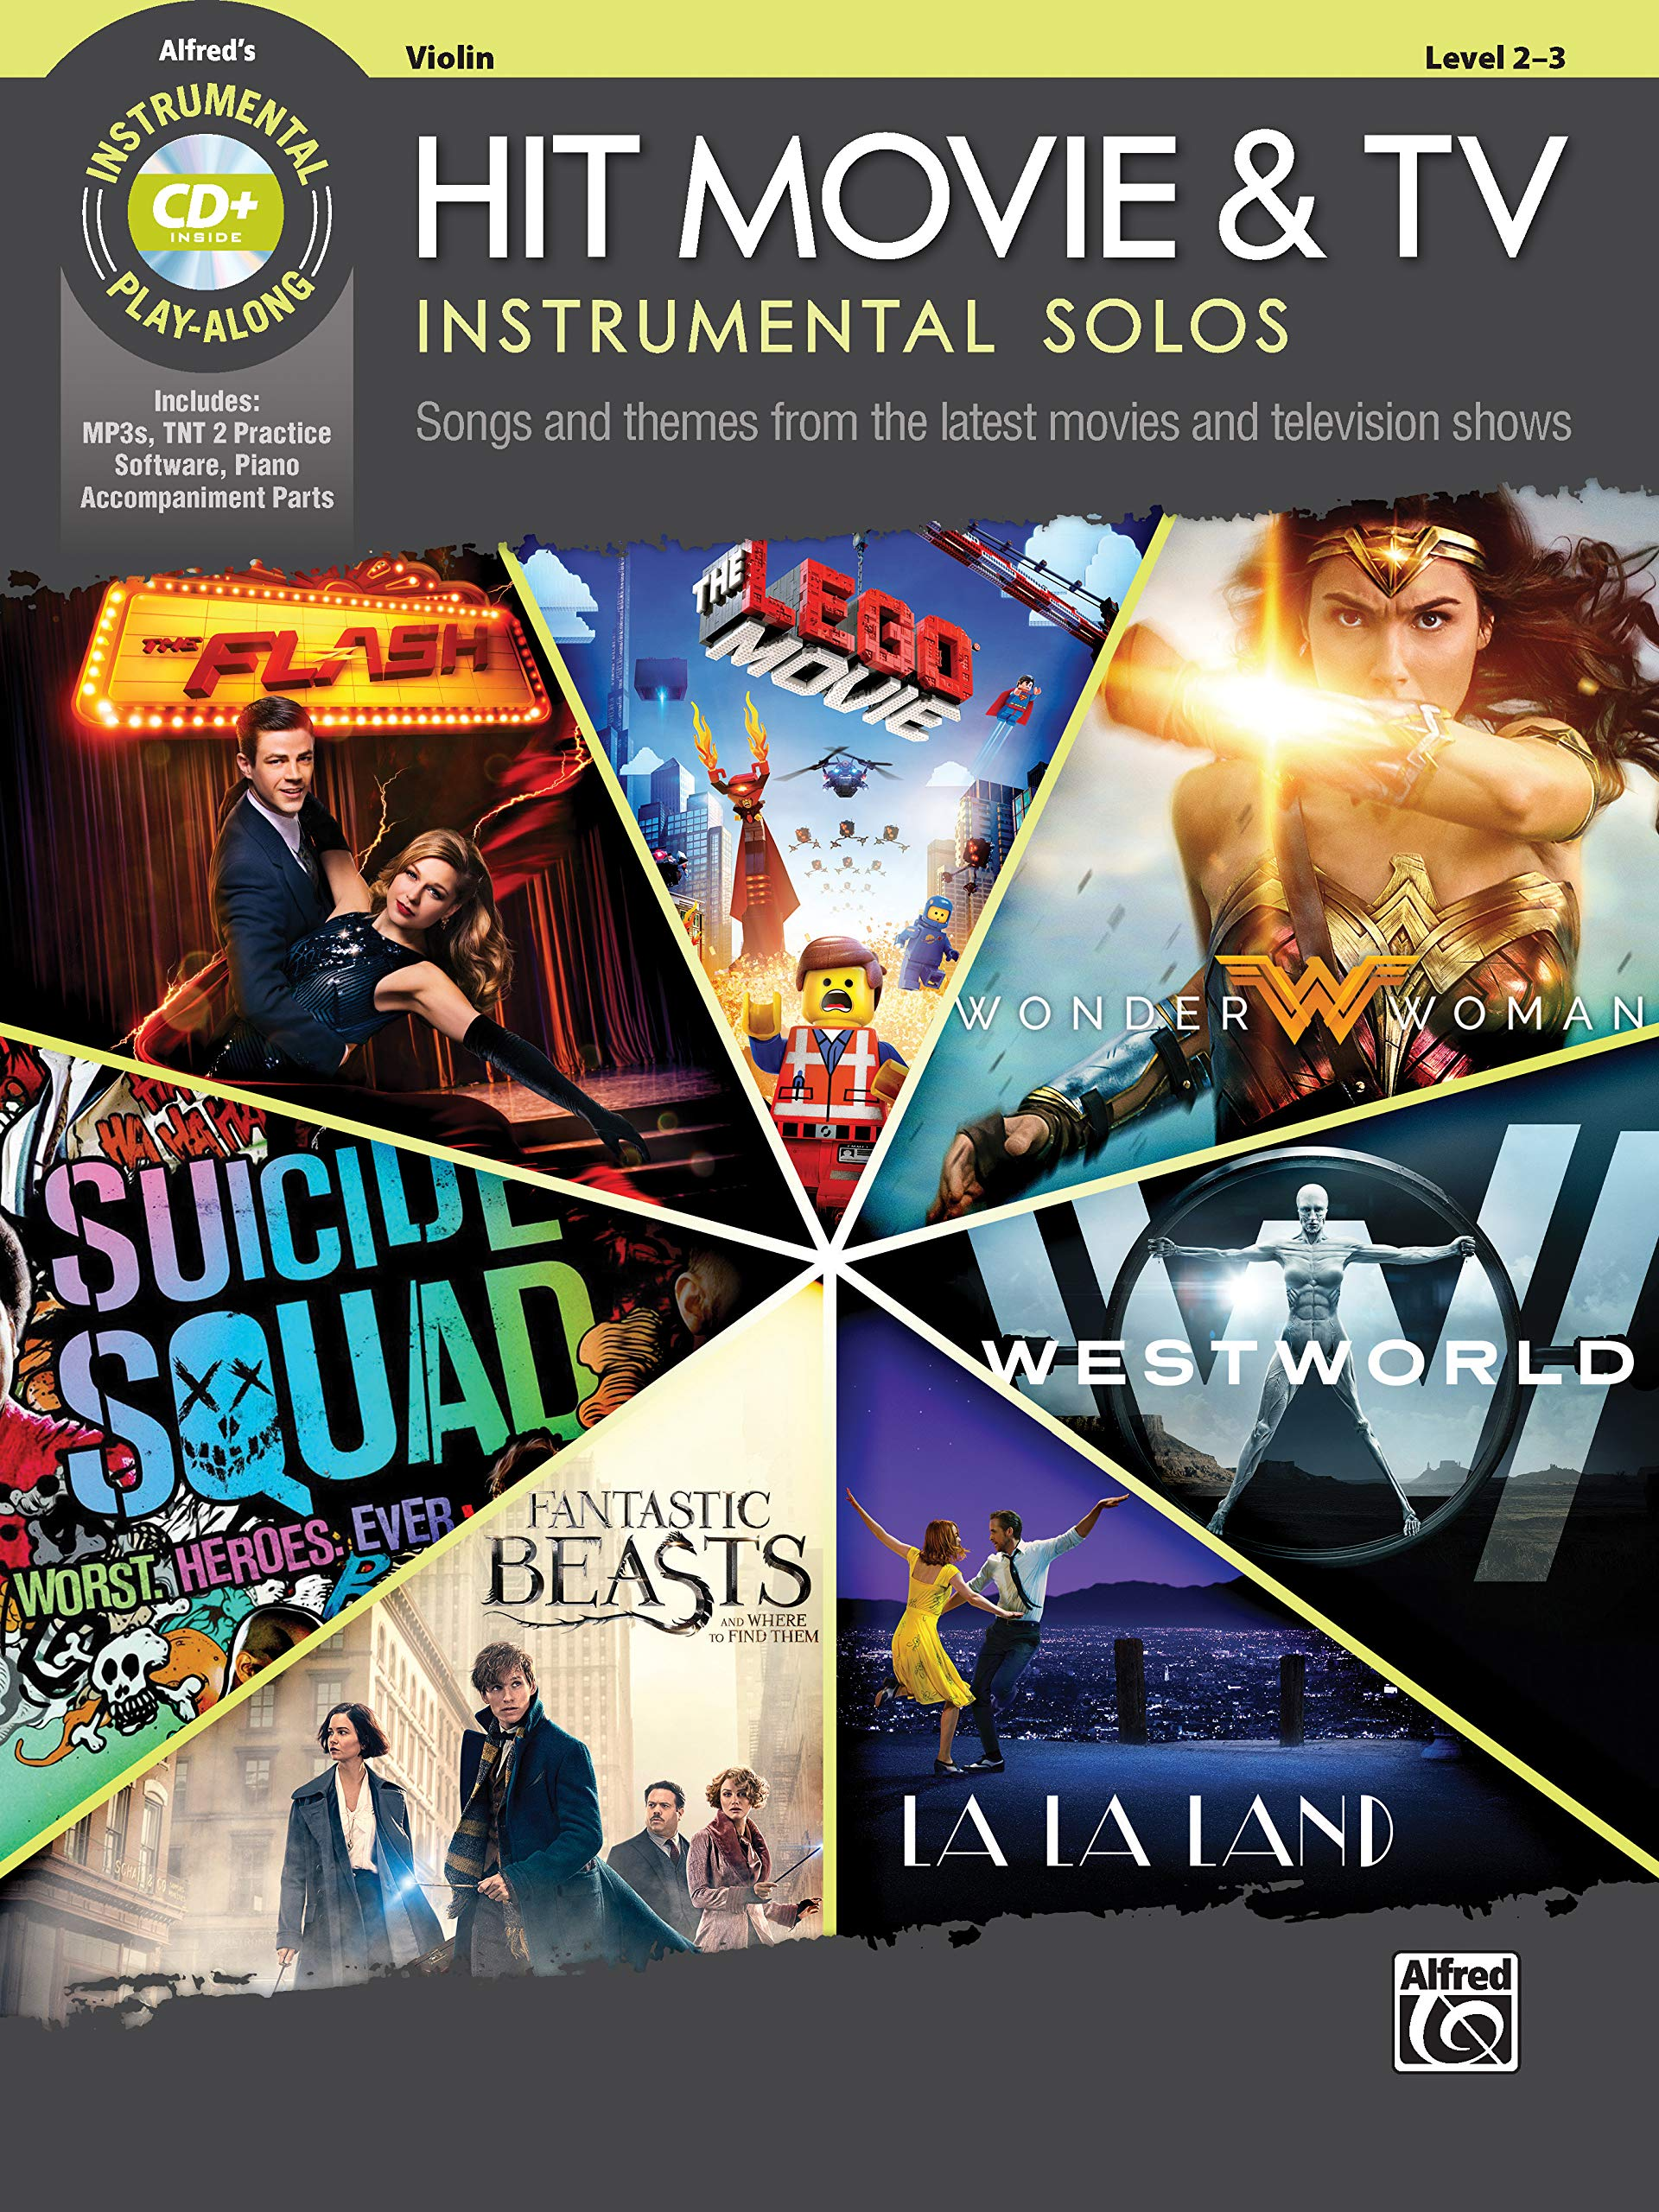 Hit Movie & TV Instrumental Solos for Strings: Songs and Themes from the Latest Movies and Television Shows (Violin), Book & CD (Instrumental Solos Series)